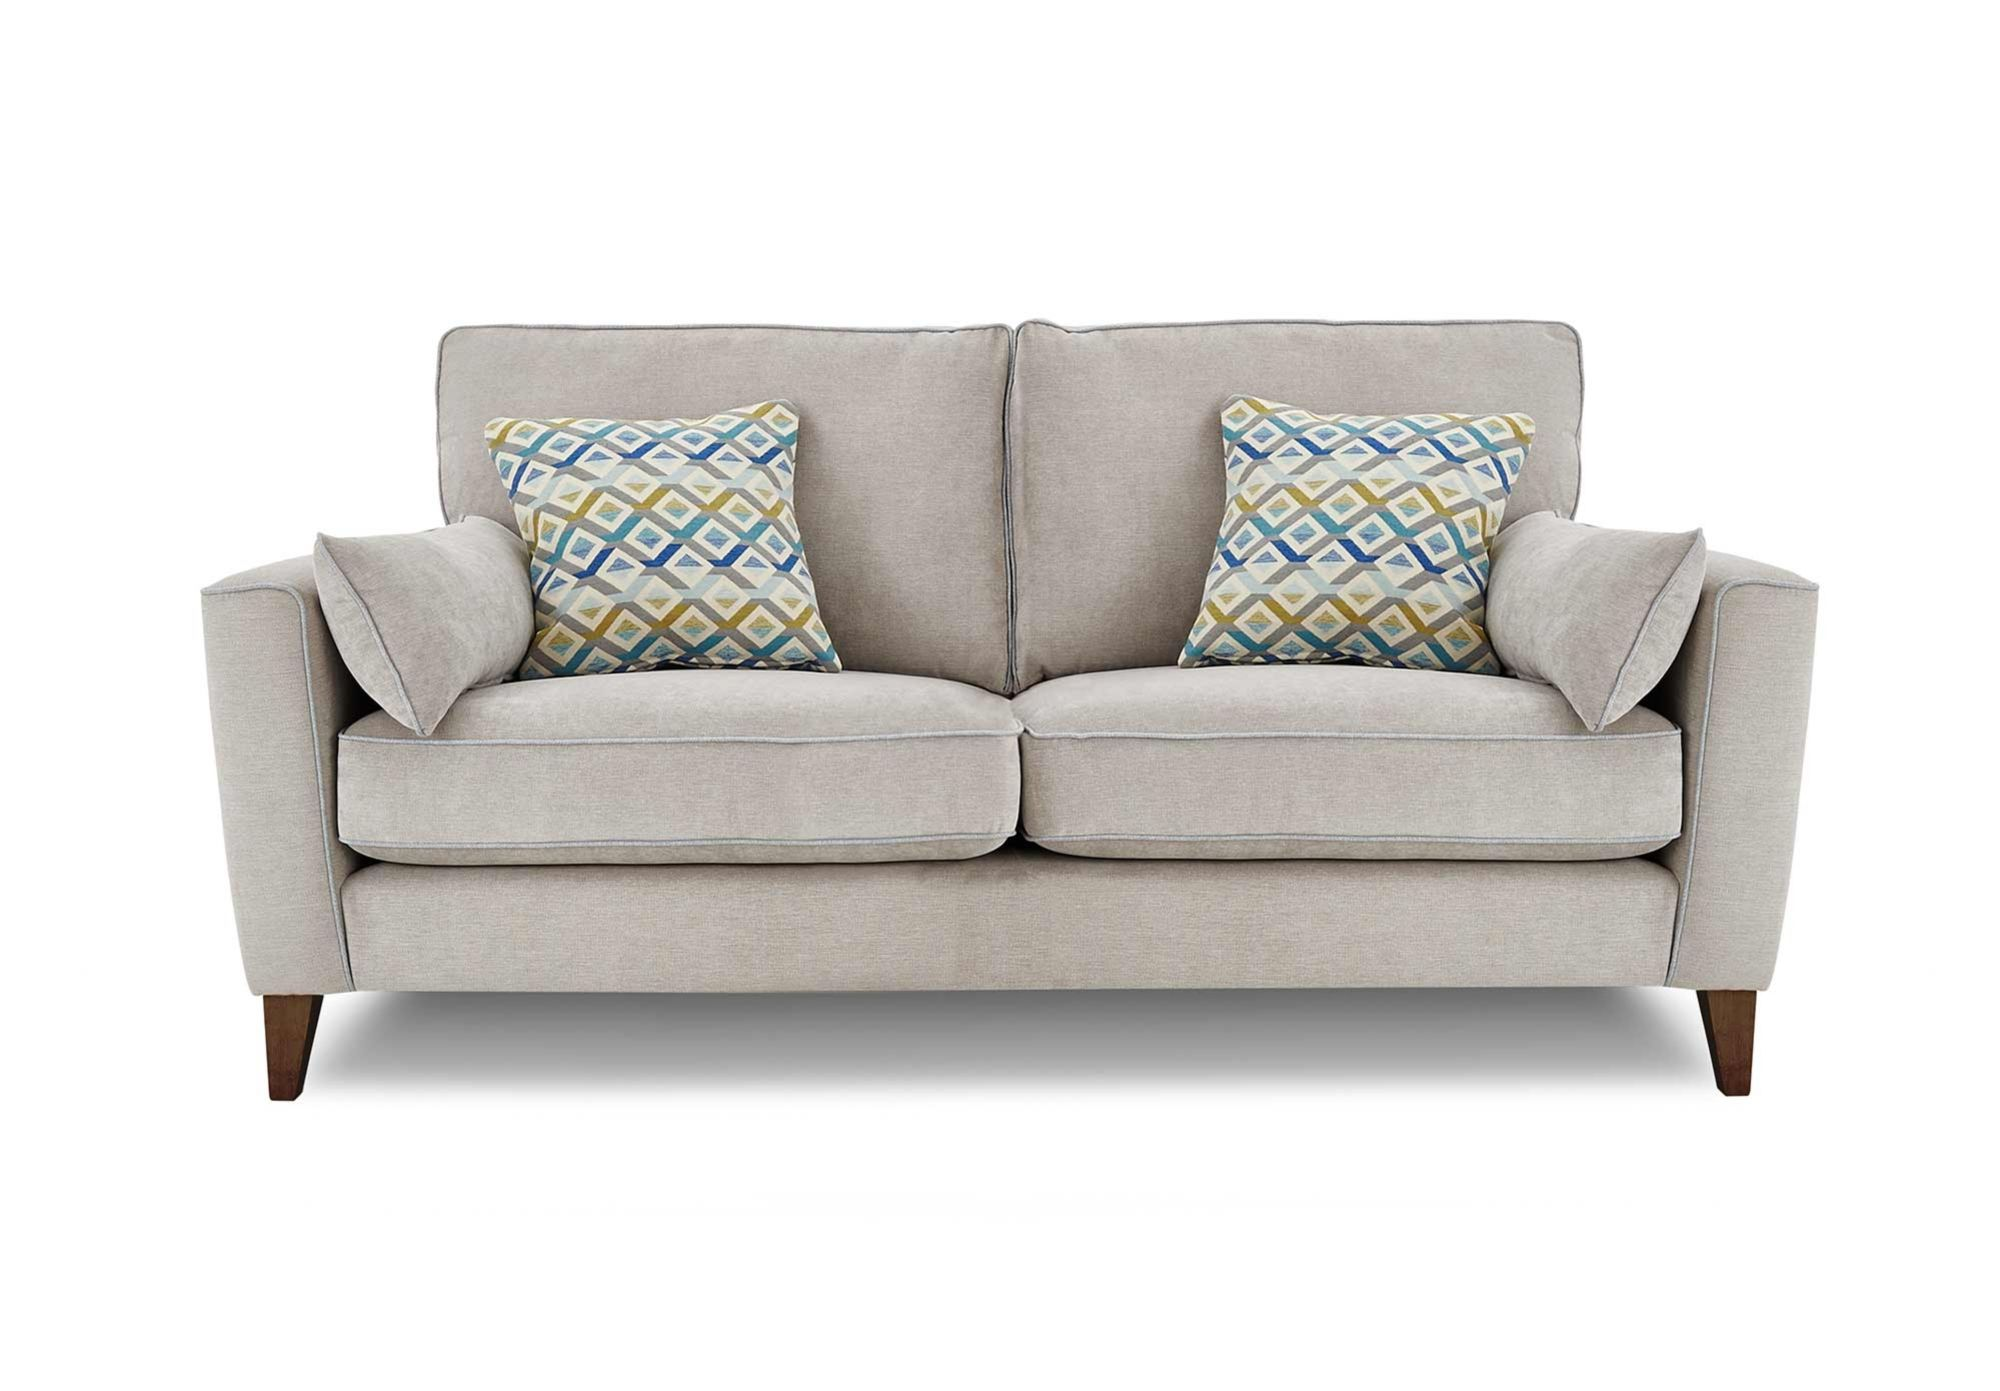 2 seater sofa bed furniture village design latest 2017 two silfre inside seat on sale with